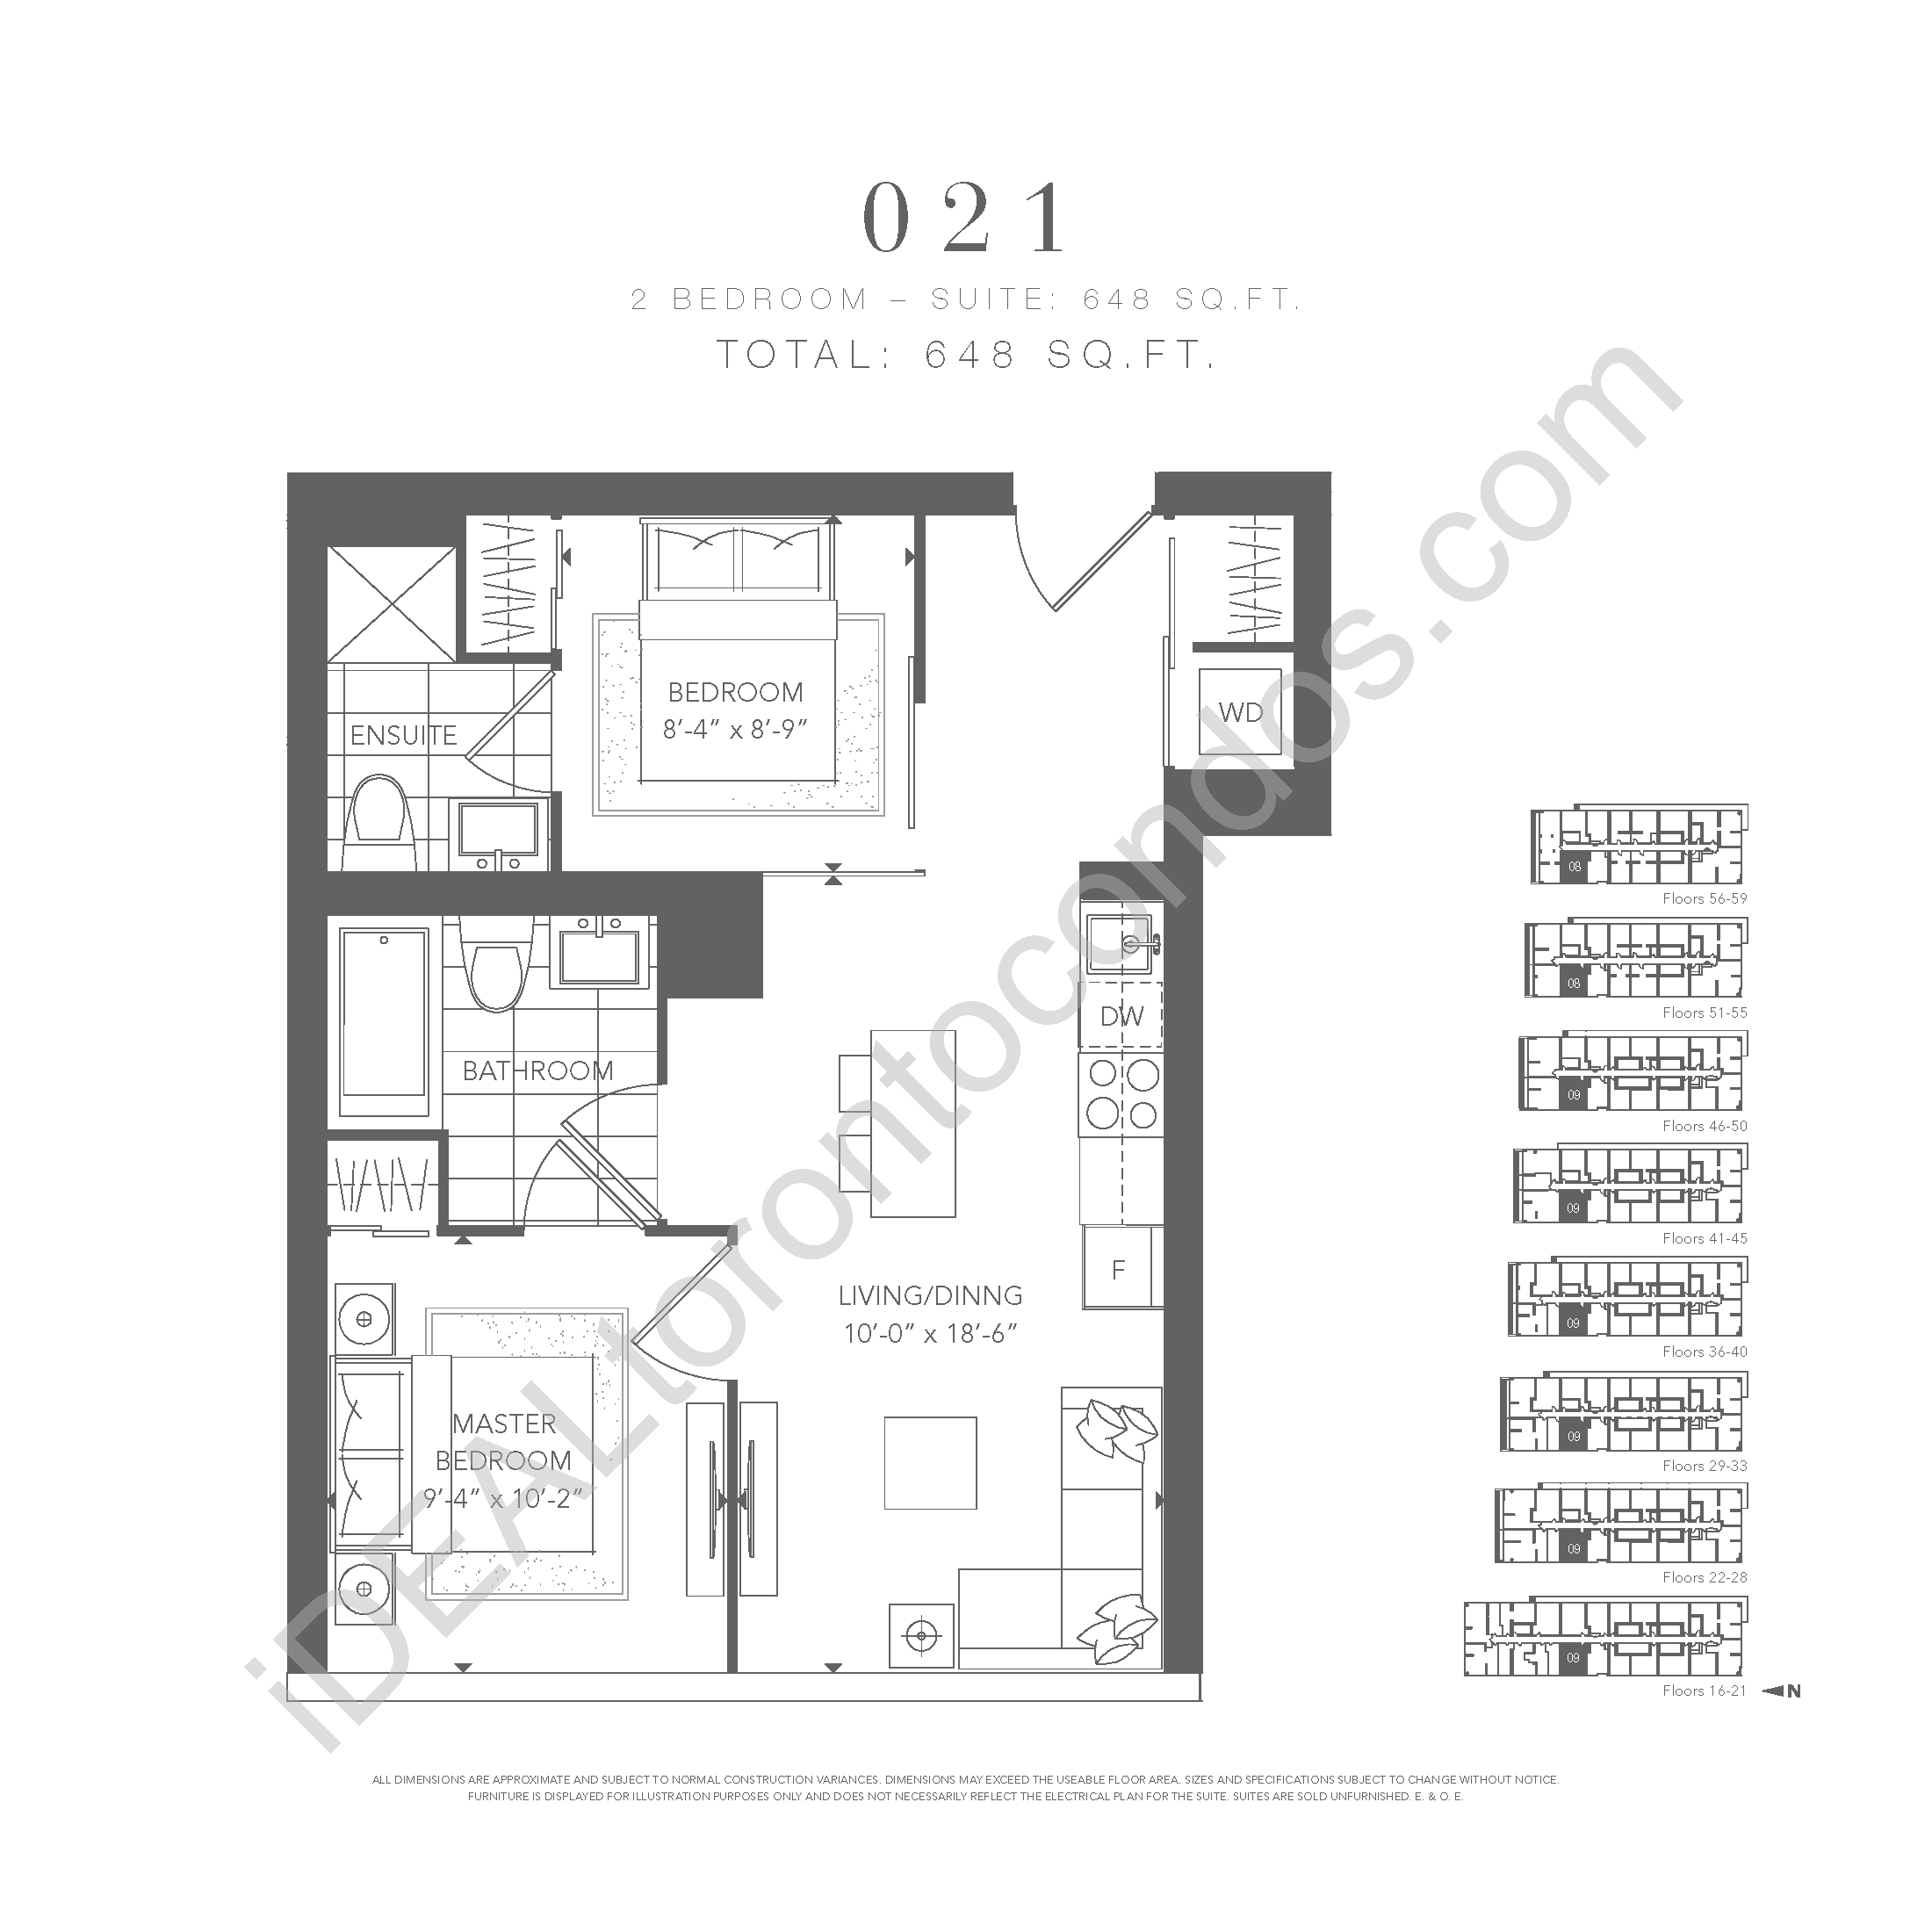 2 bedroom electrical plan